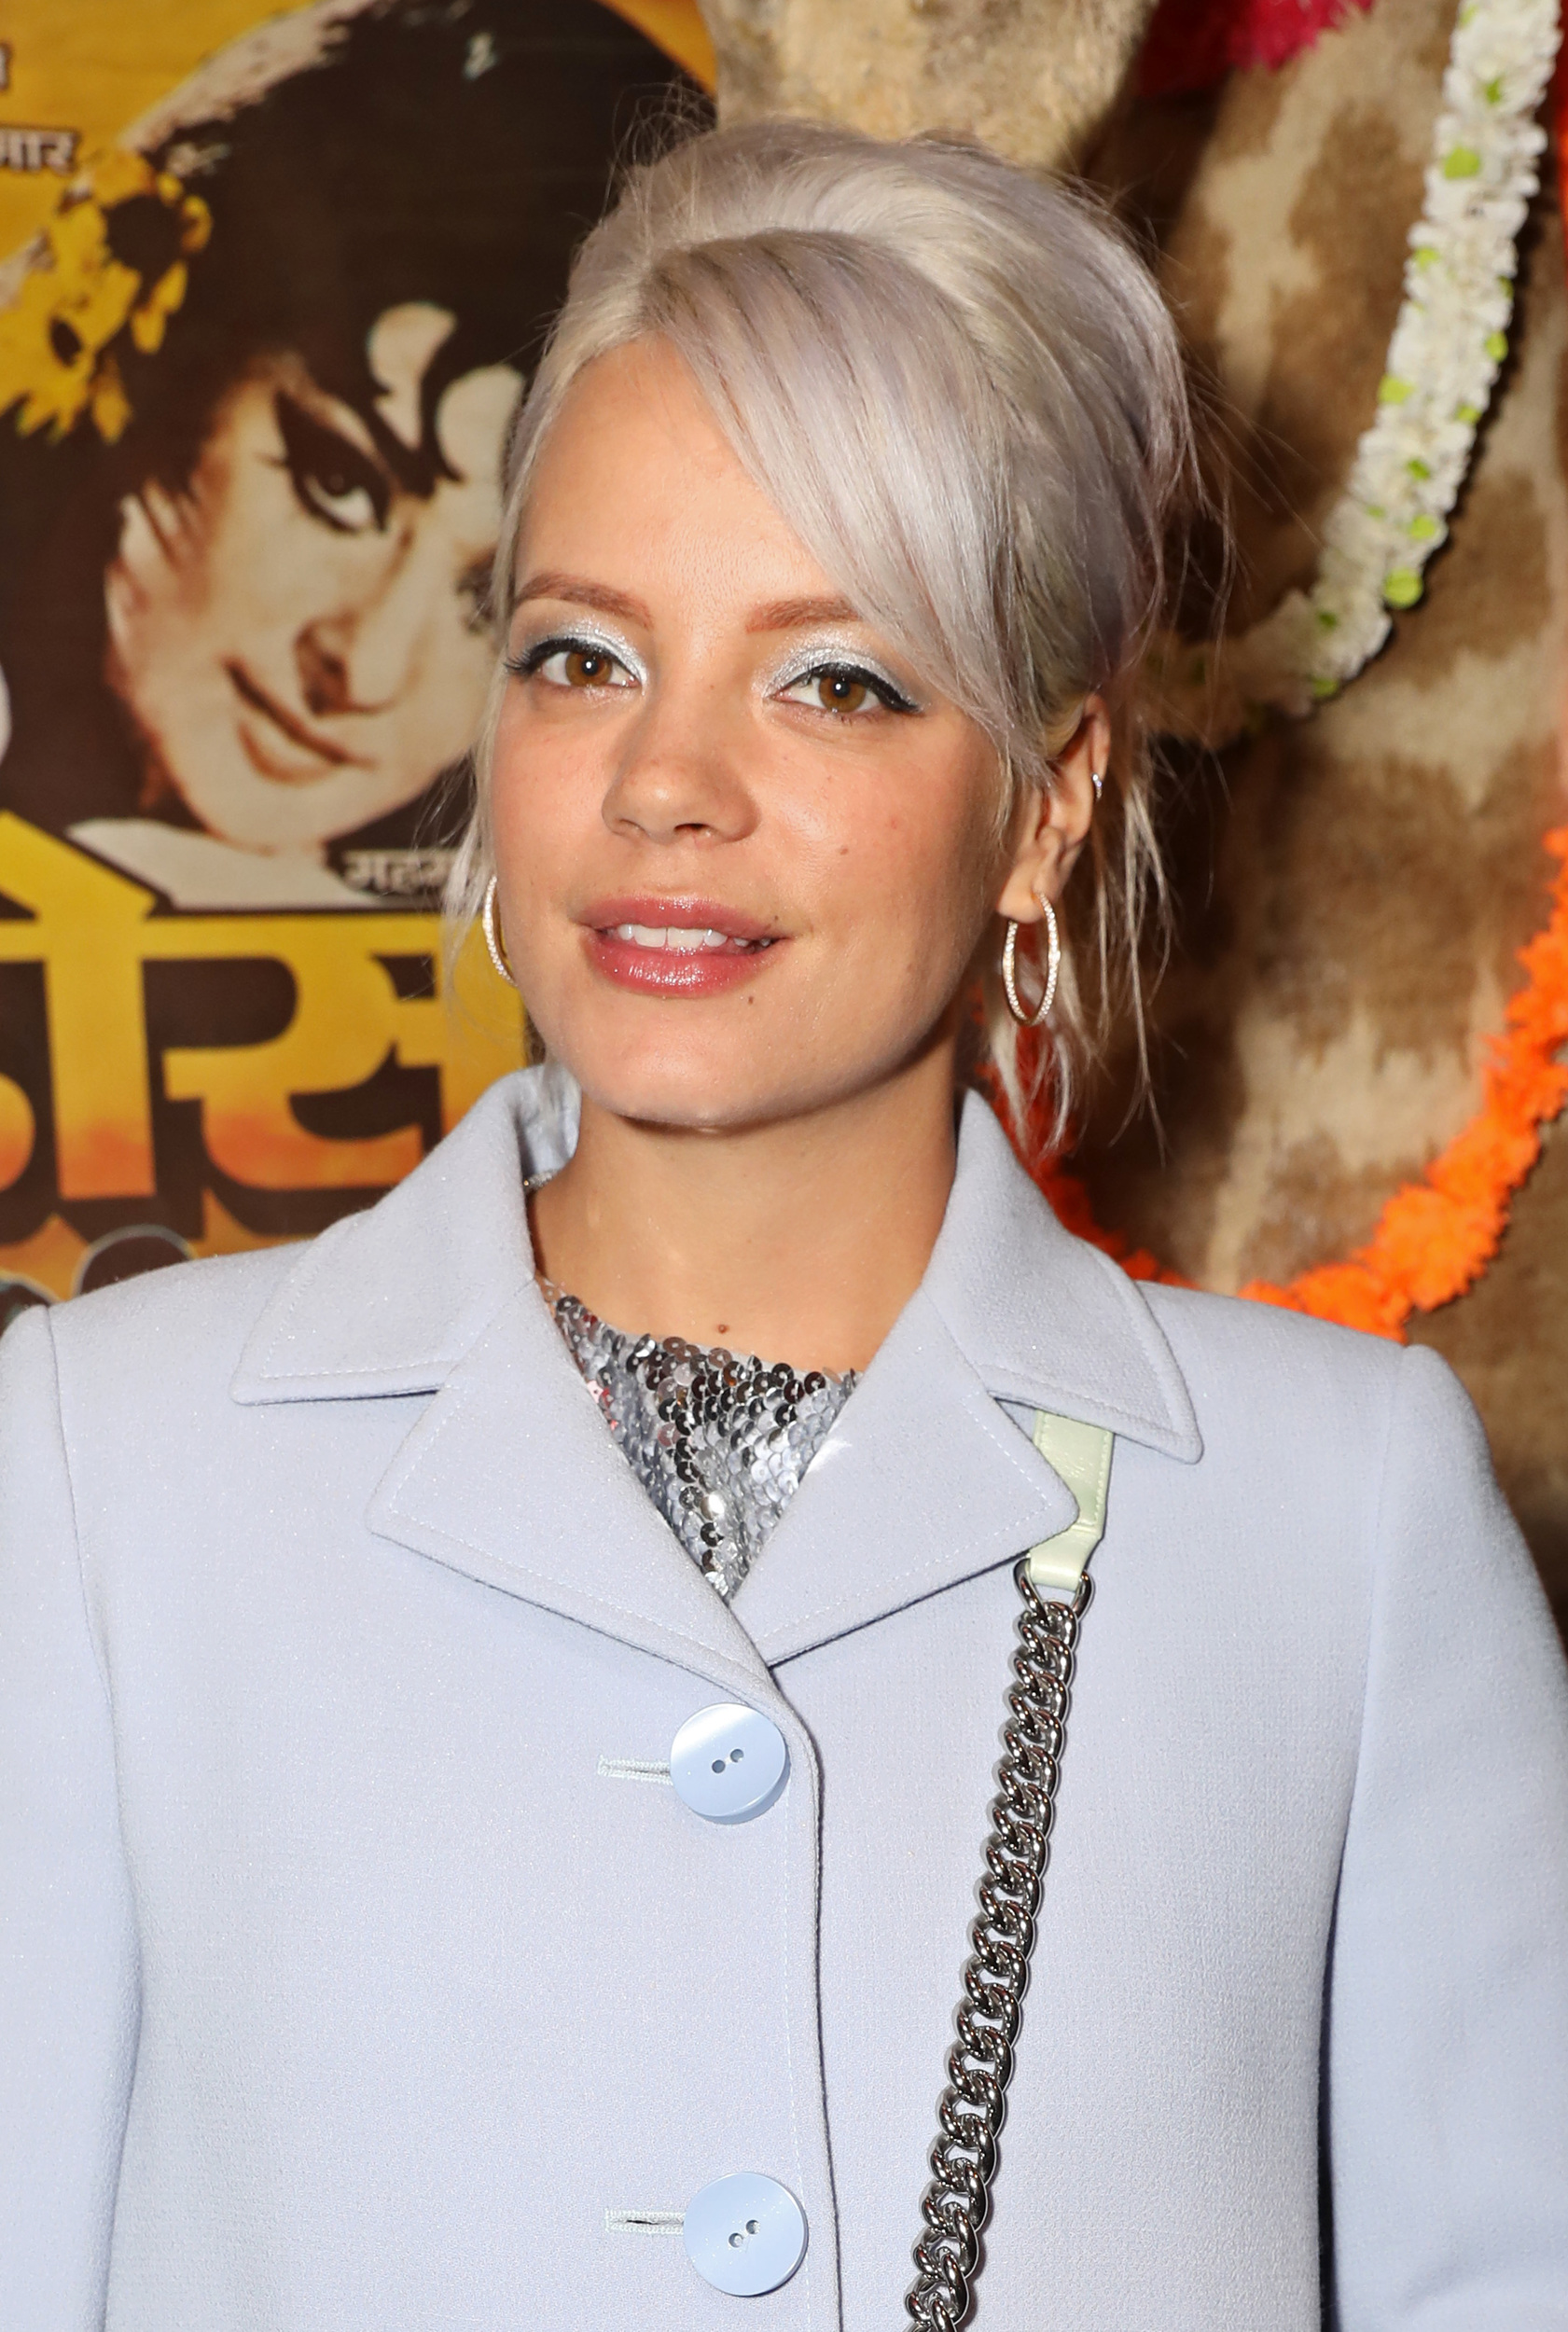 Lily Allen admits to flings with Zoe Kravitz & other celebs in new tell-all book